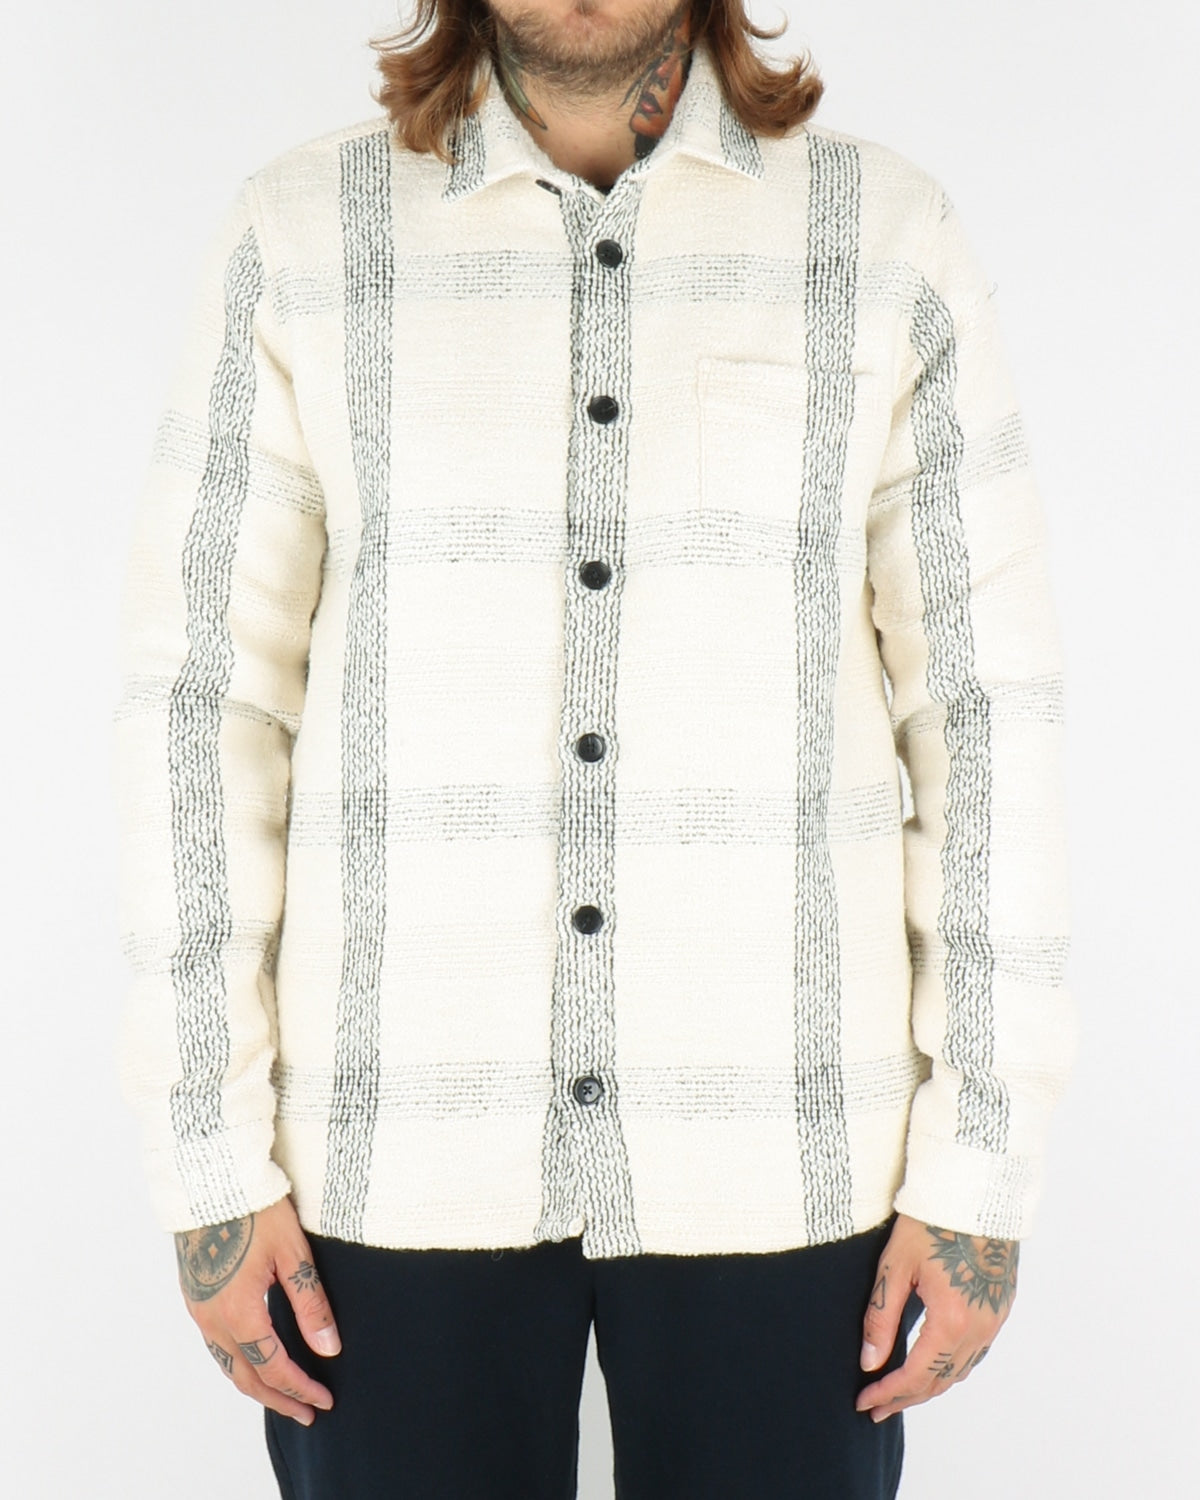 libertine libertine_miracle shirt_offwhite check_view_1_3